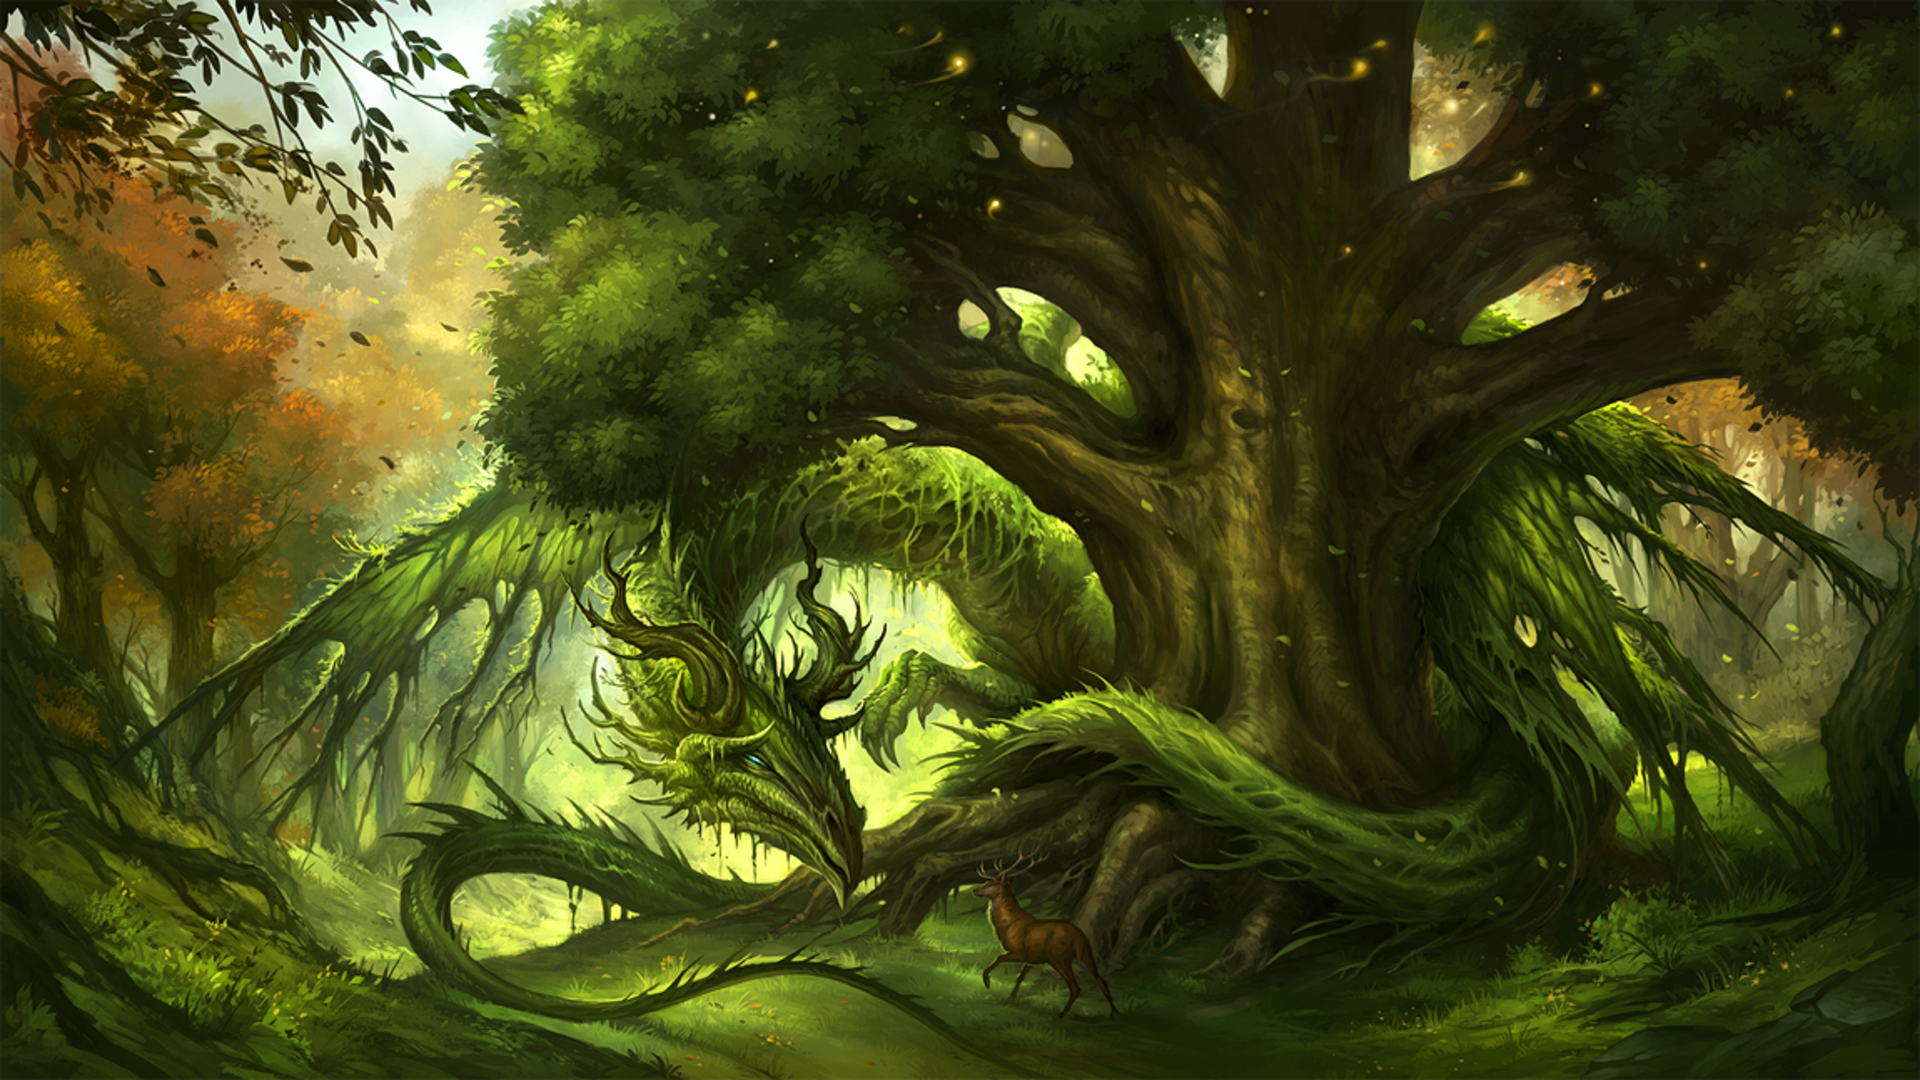 Guardian Of The Forest Full HD Wallpaper And Background Image